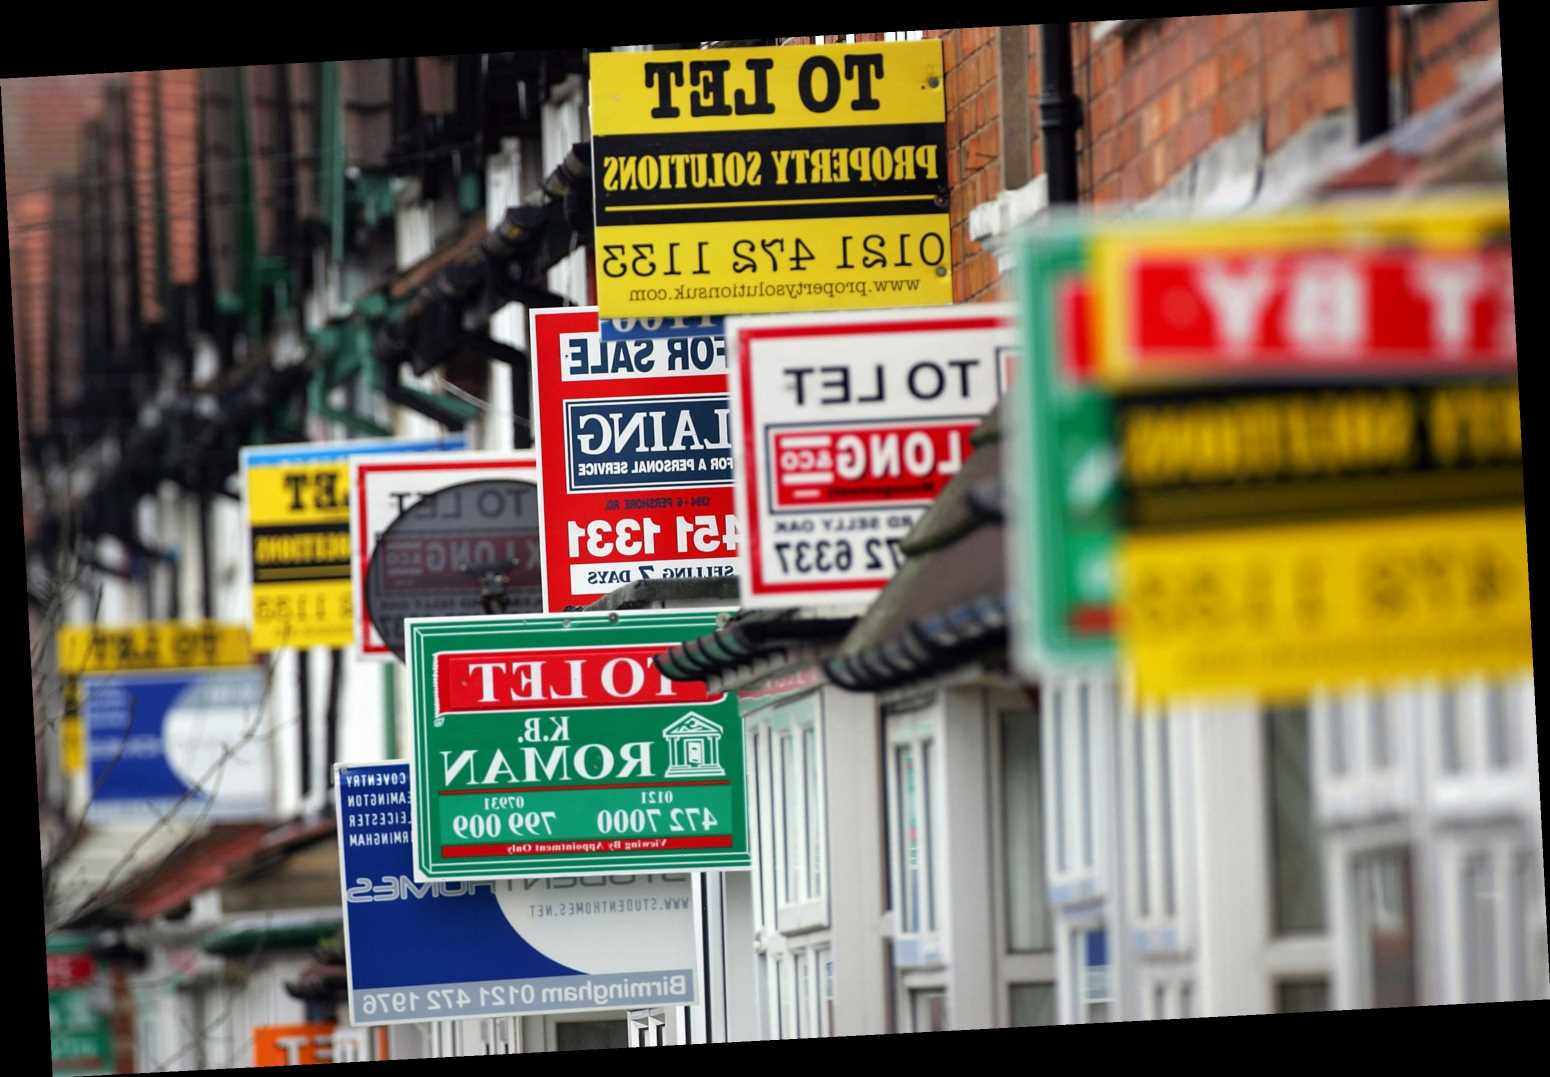 Speedy internet and proximity to a pub, the top priorities buyers look for when moving home